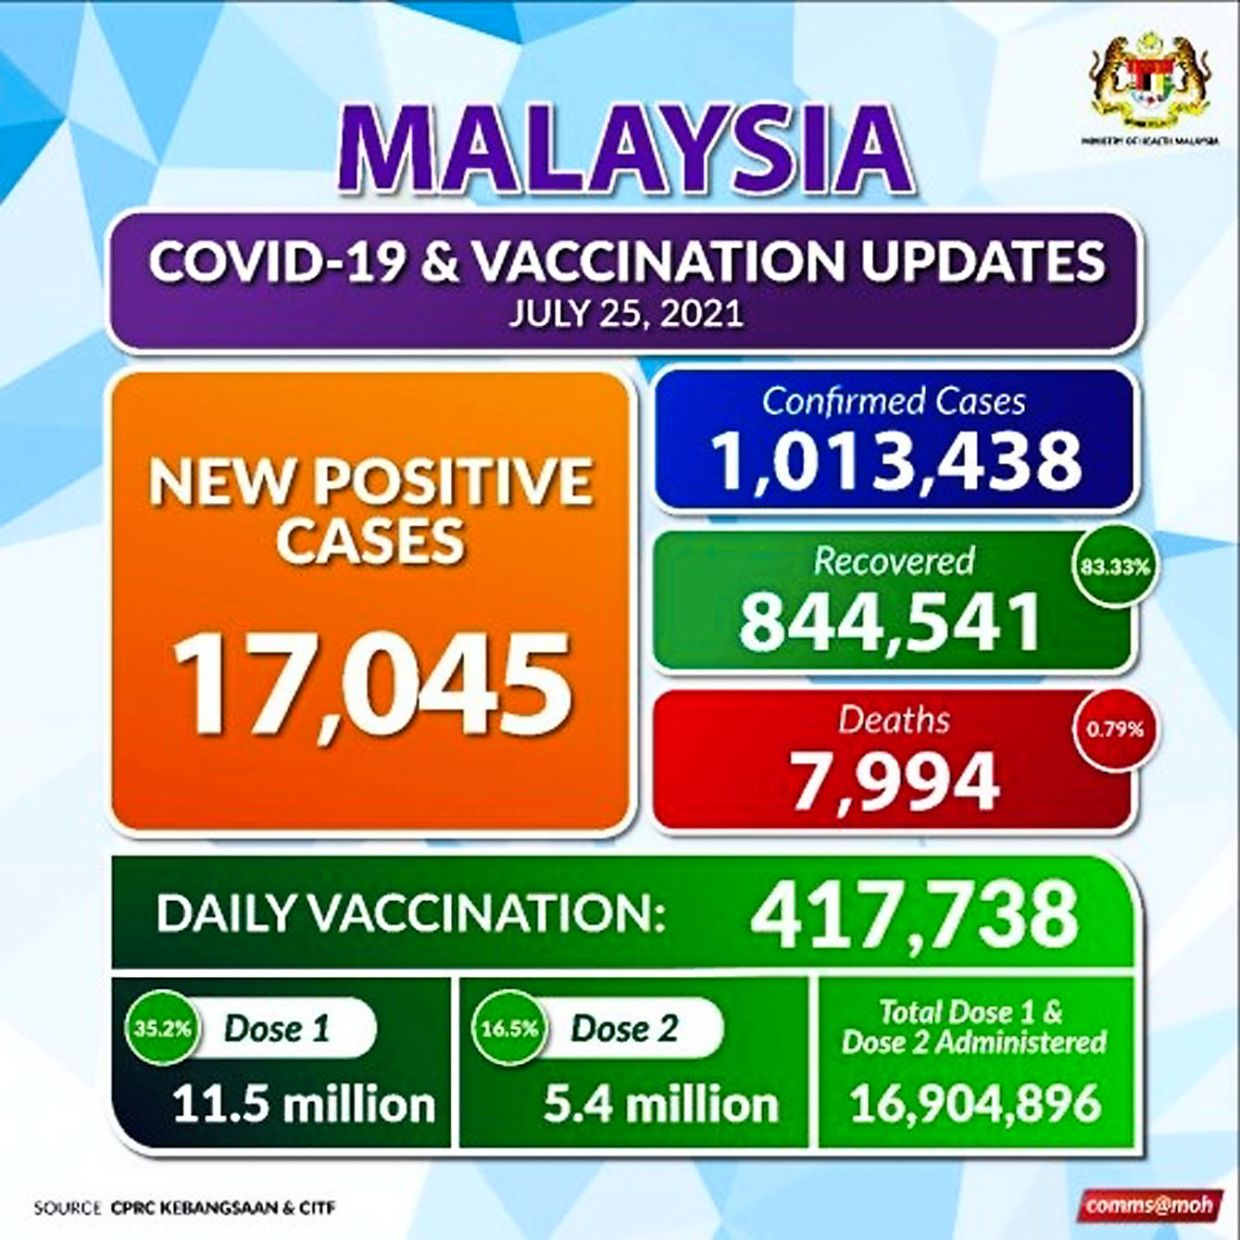 The total number of Covid-19 cases in Malaysia breached the one million mark last Sunday, leaving no doubt the SARS-CoV-2 virus is widespread in our community. — Health Ministry